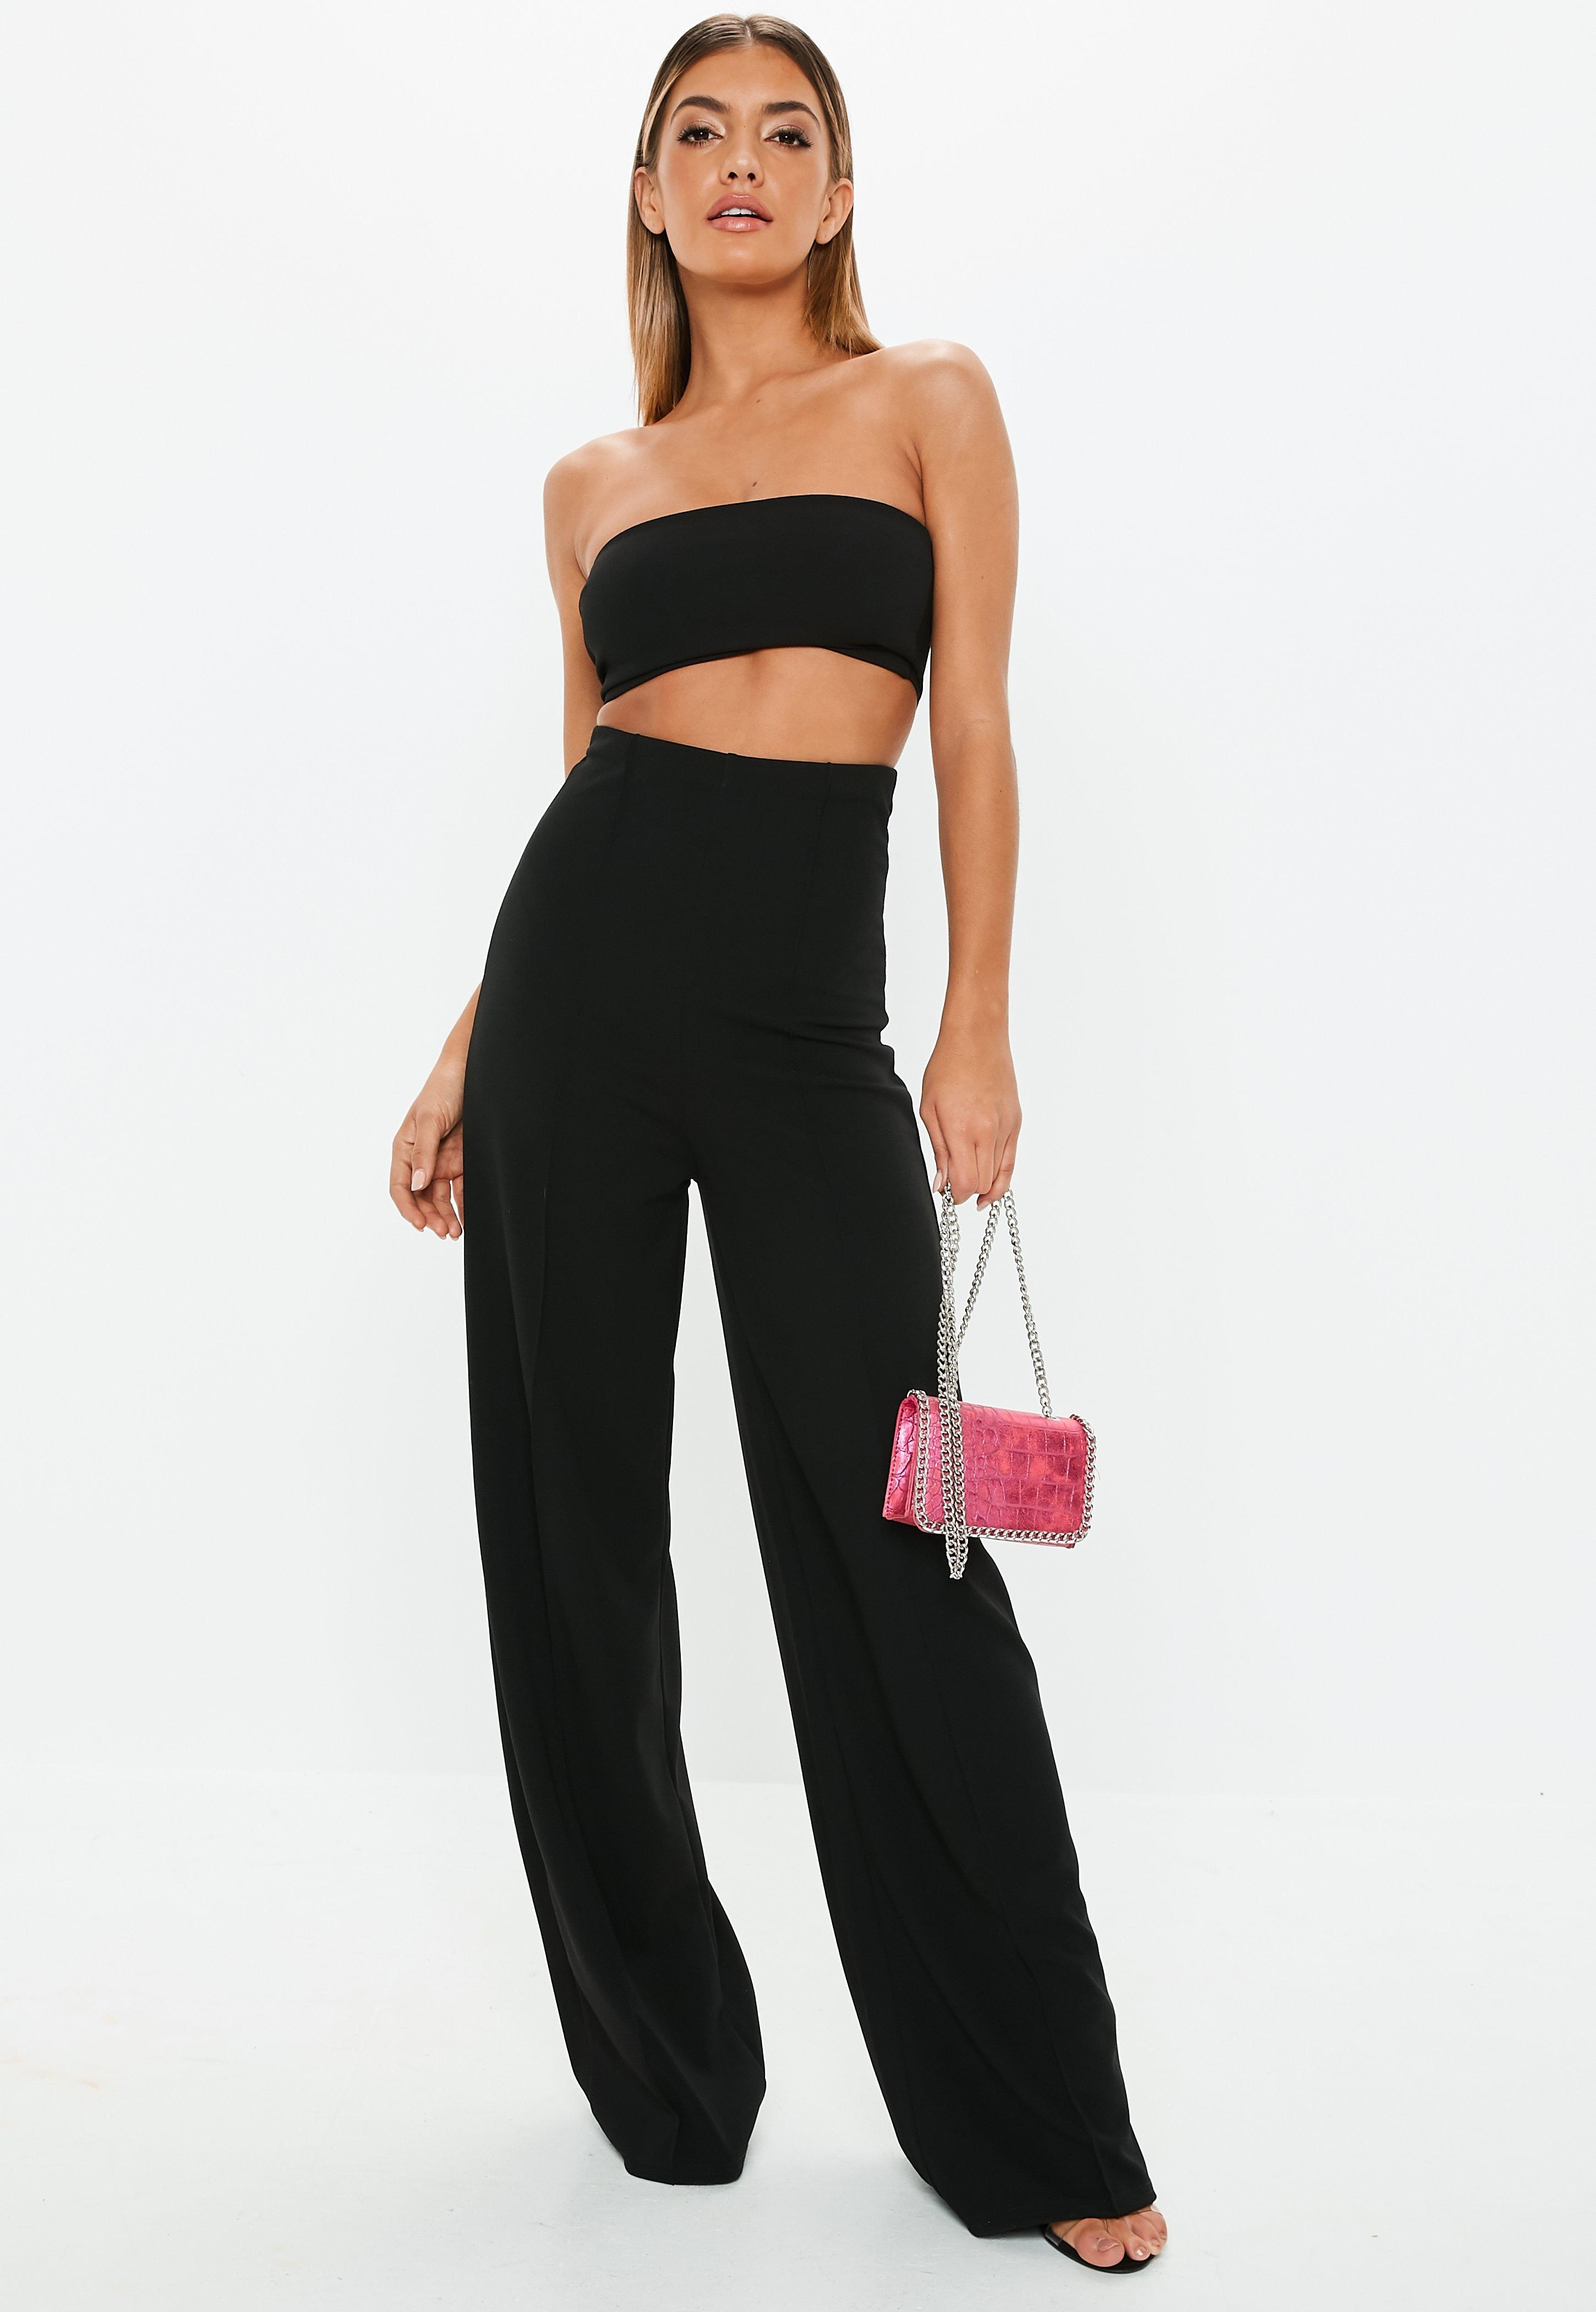 Wide Leg Pants- Palazzo   Loose Fit Pants Online   Missguided c59be37cd2c2